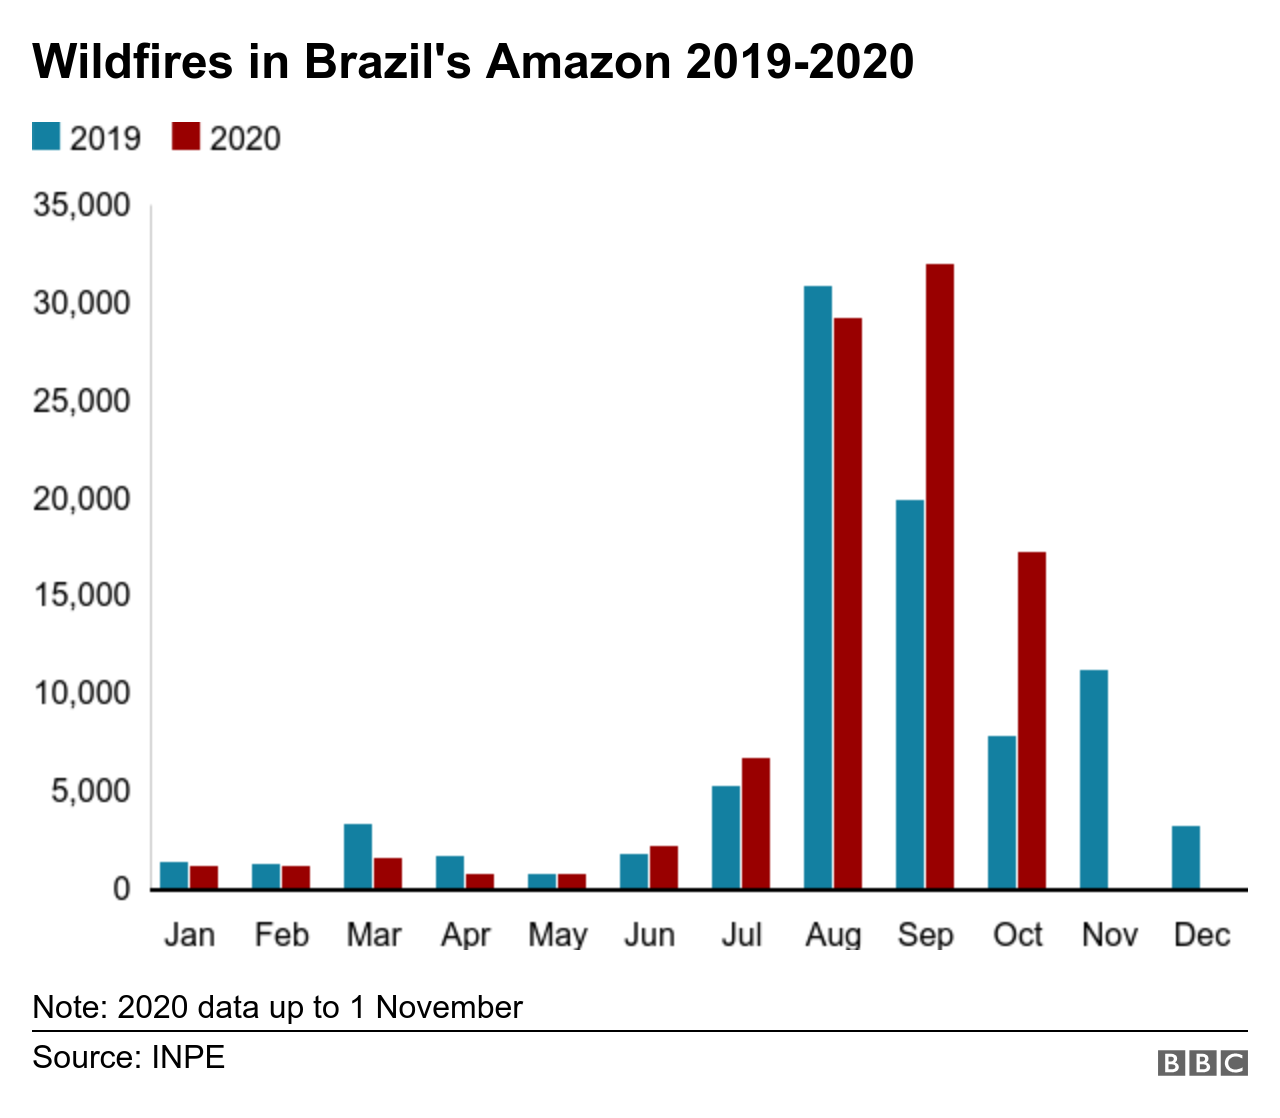 Graph showing the number of fires in the Amazon